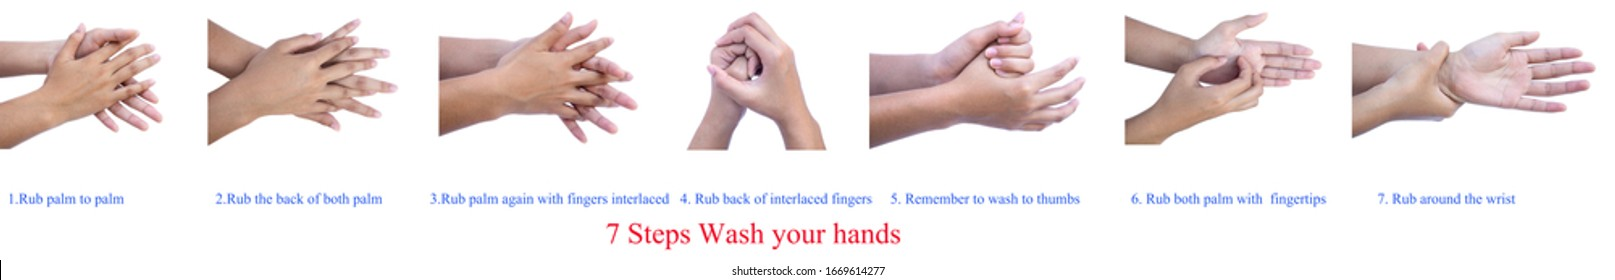 7 Steps Wash your hands to be safe from the virus. isolated on white background